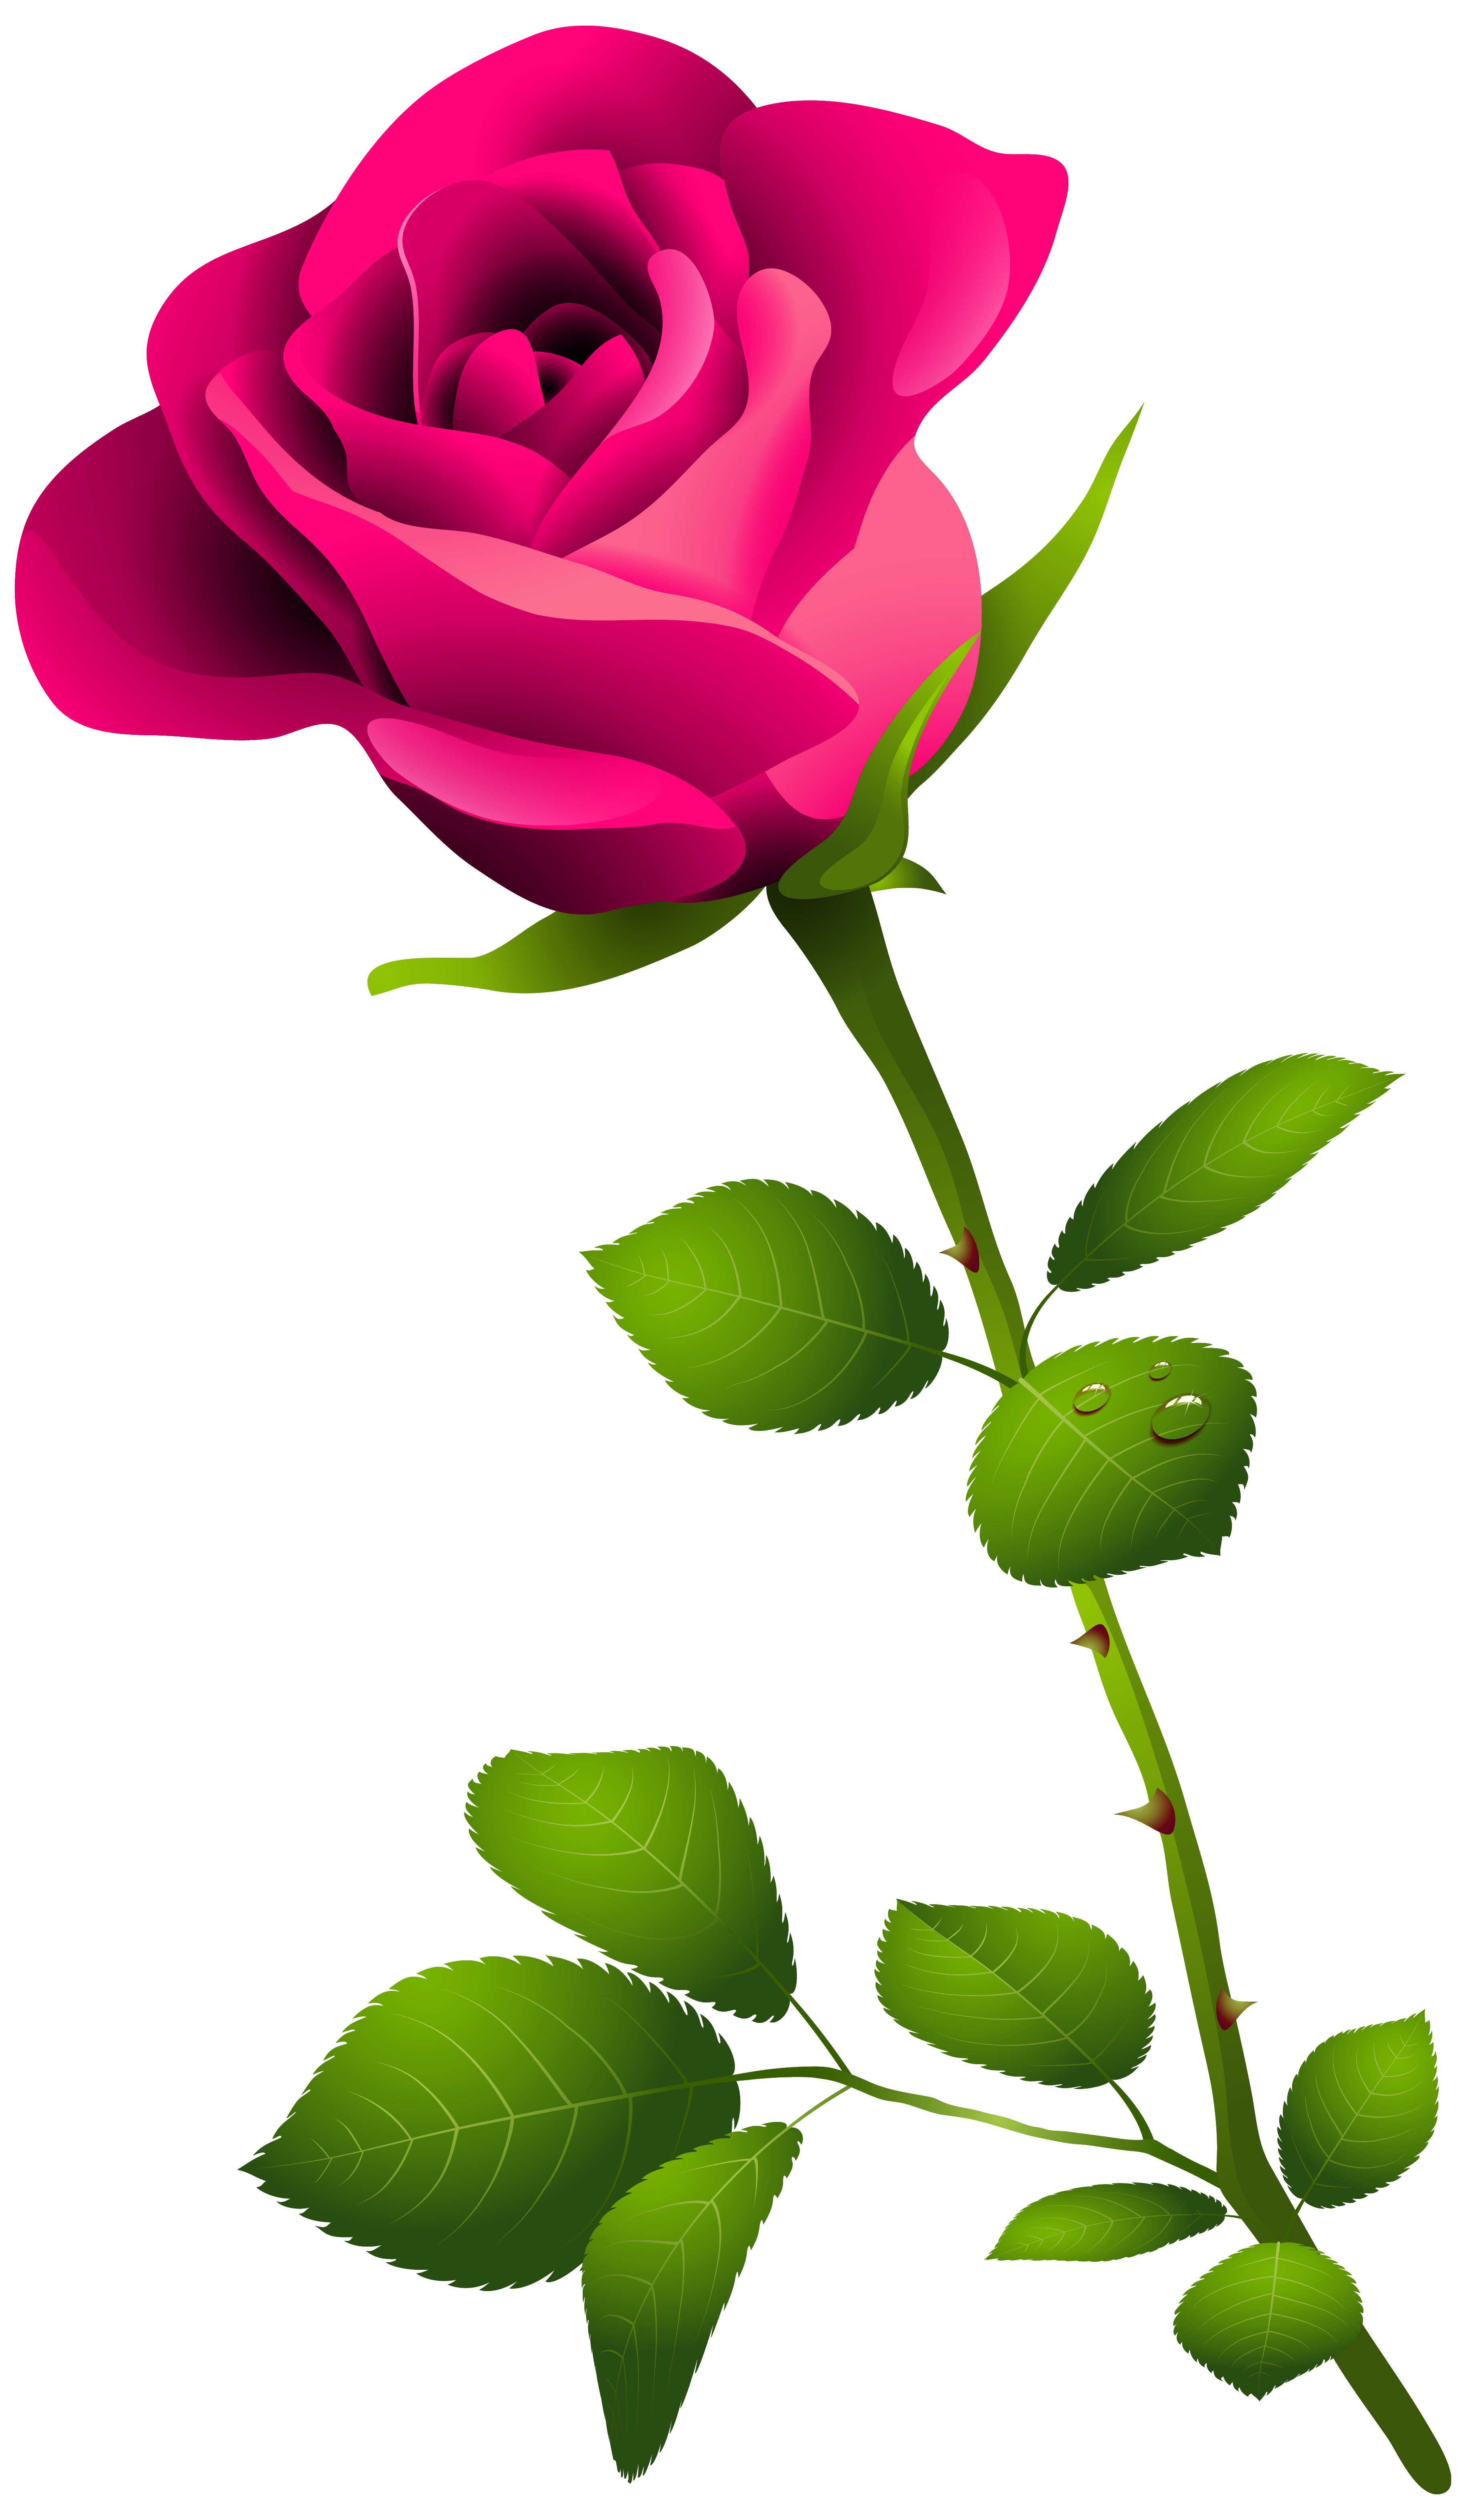 Pink rose with clipart. Flower stem png